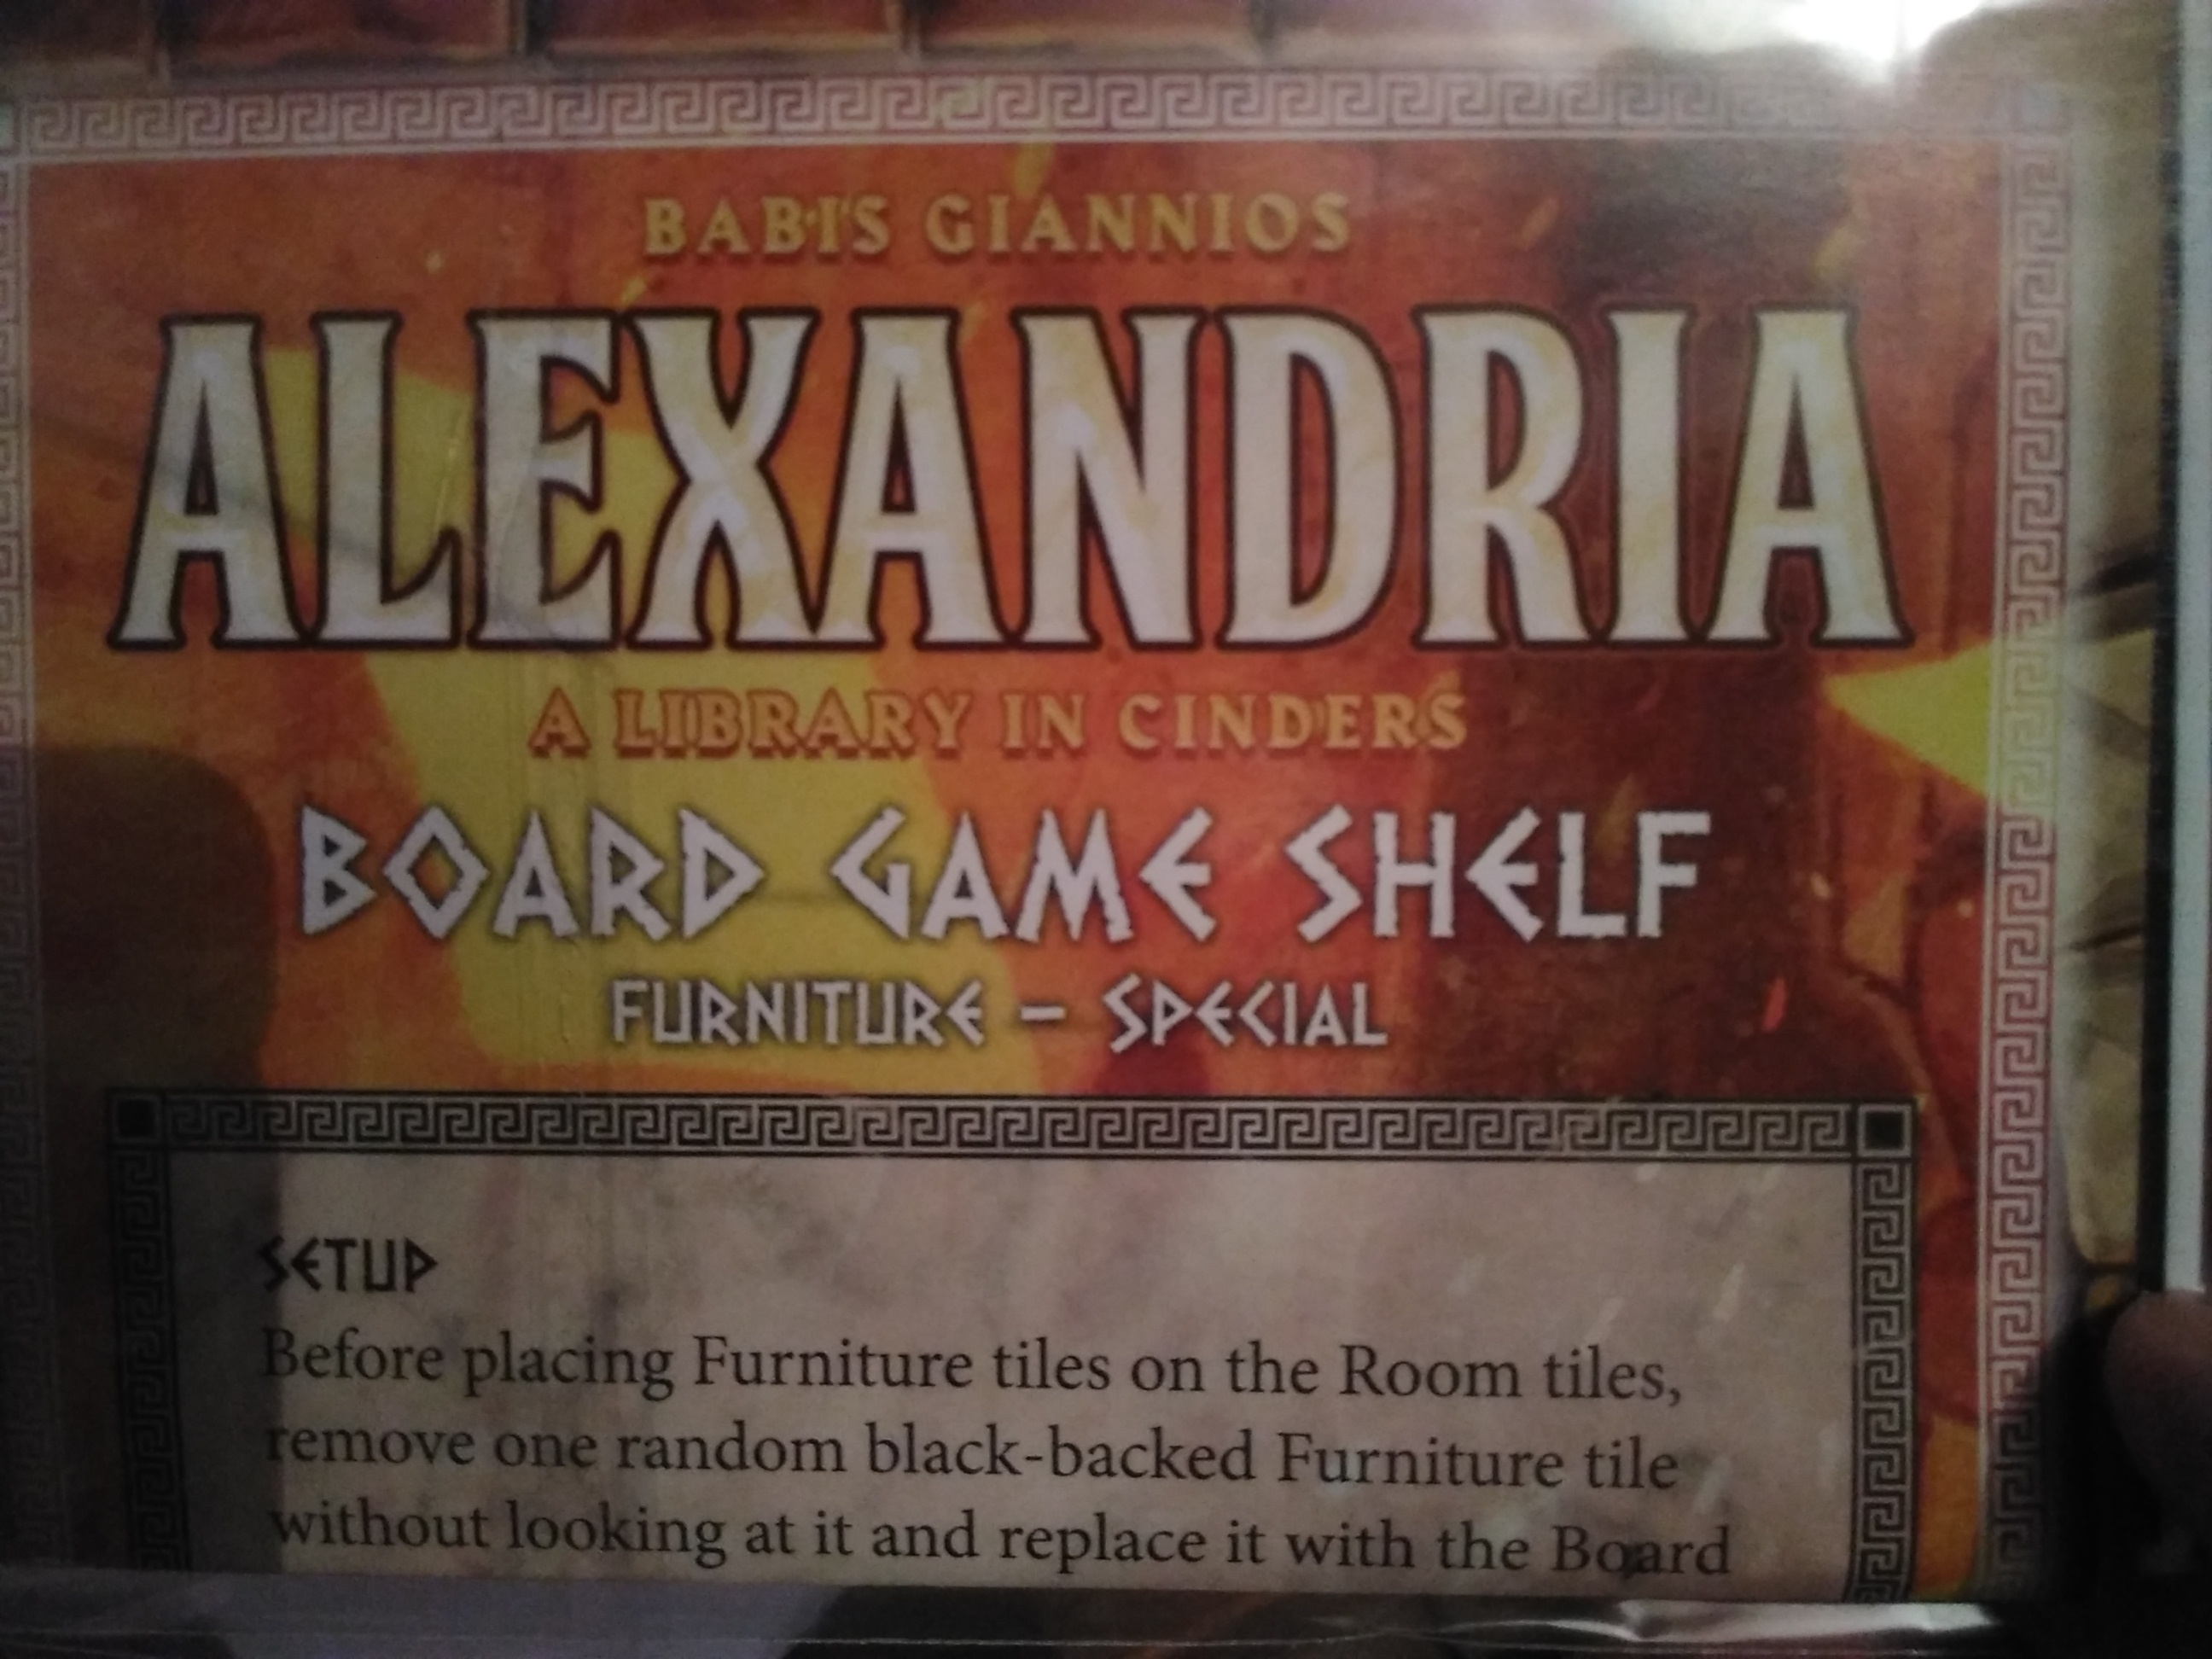 Alexandria - Board Game Shelf